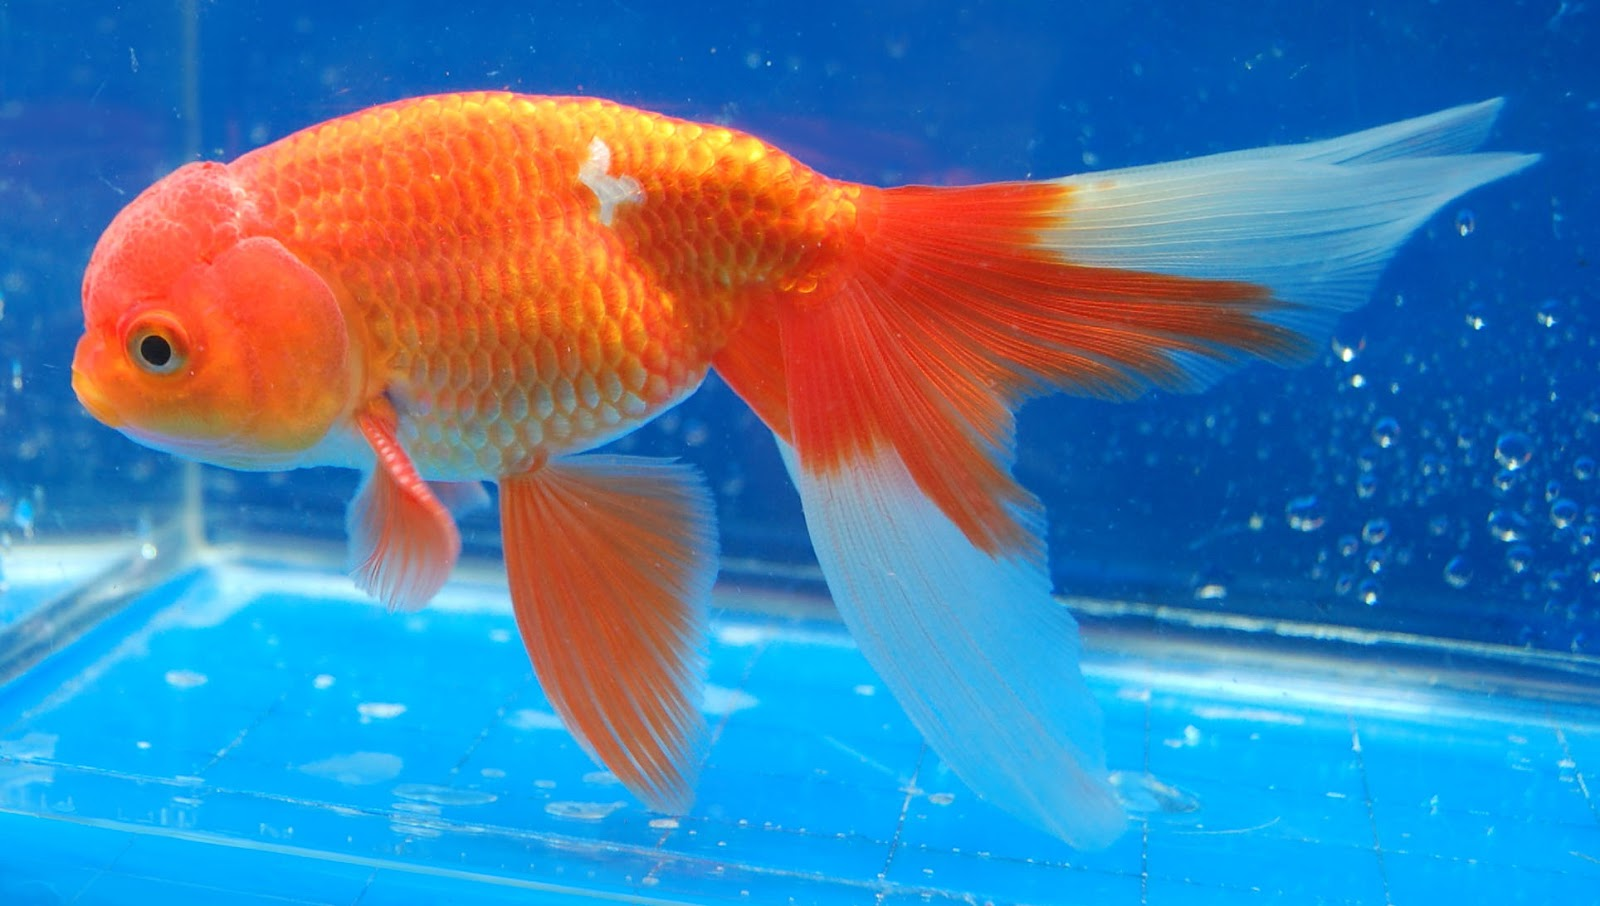 Goldfish Types And Pictures - www.proteckmachinery.com